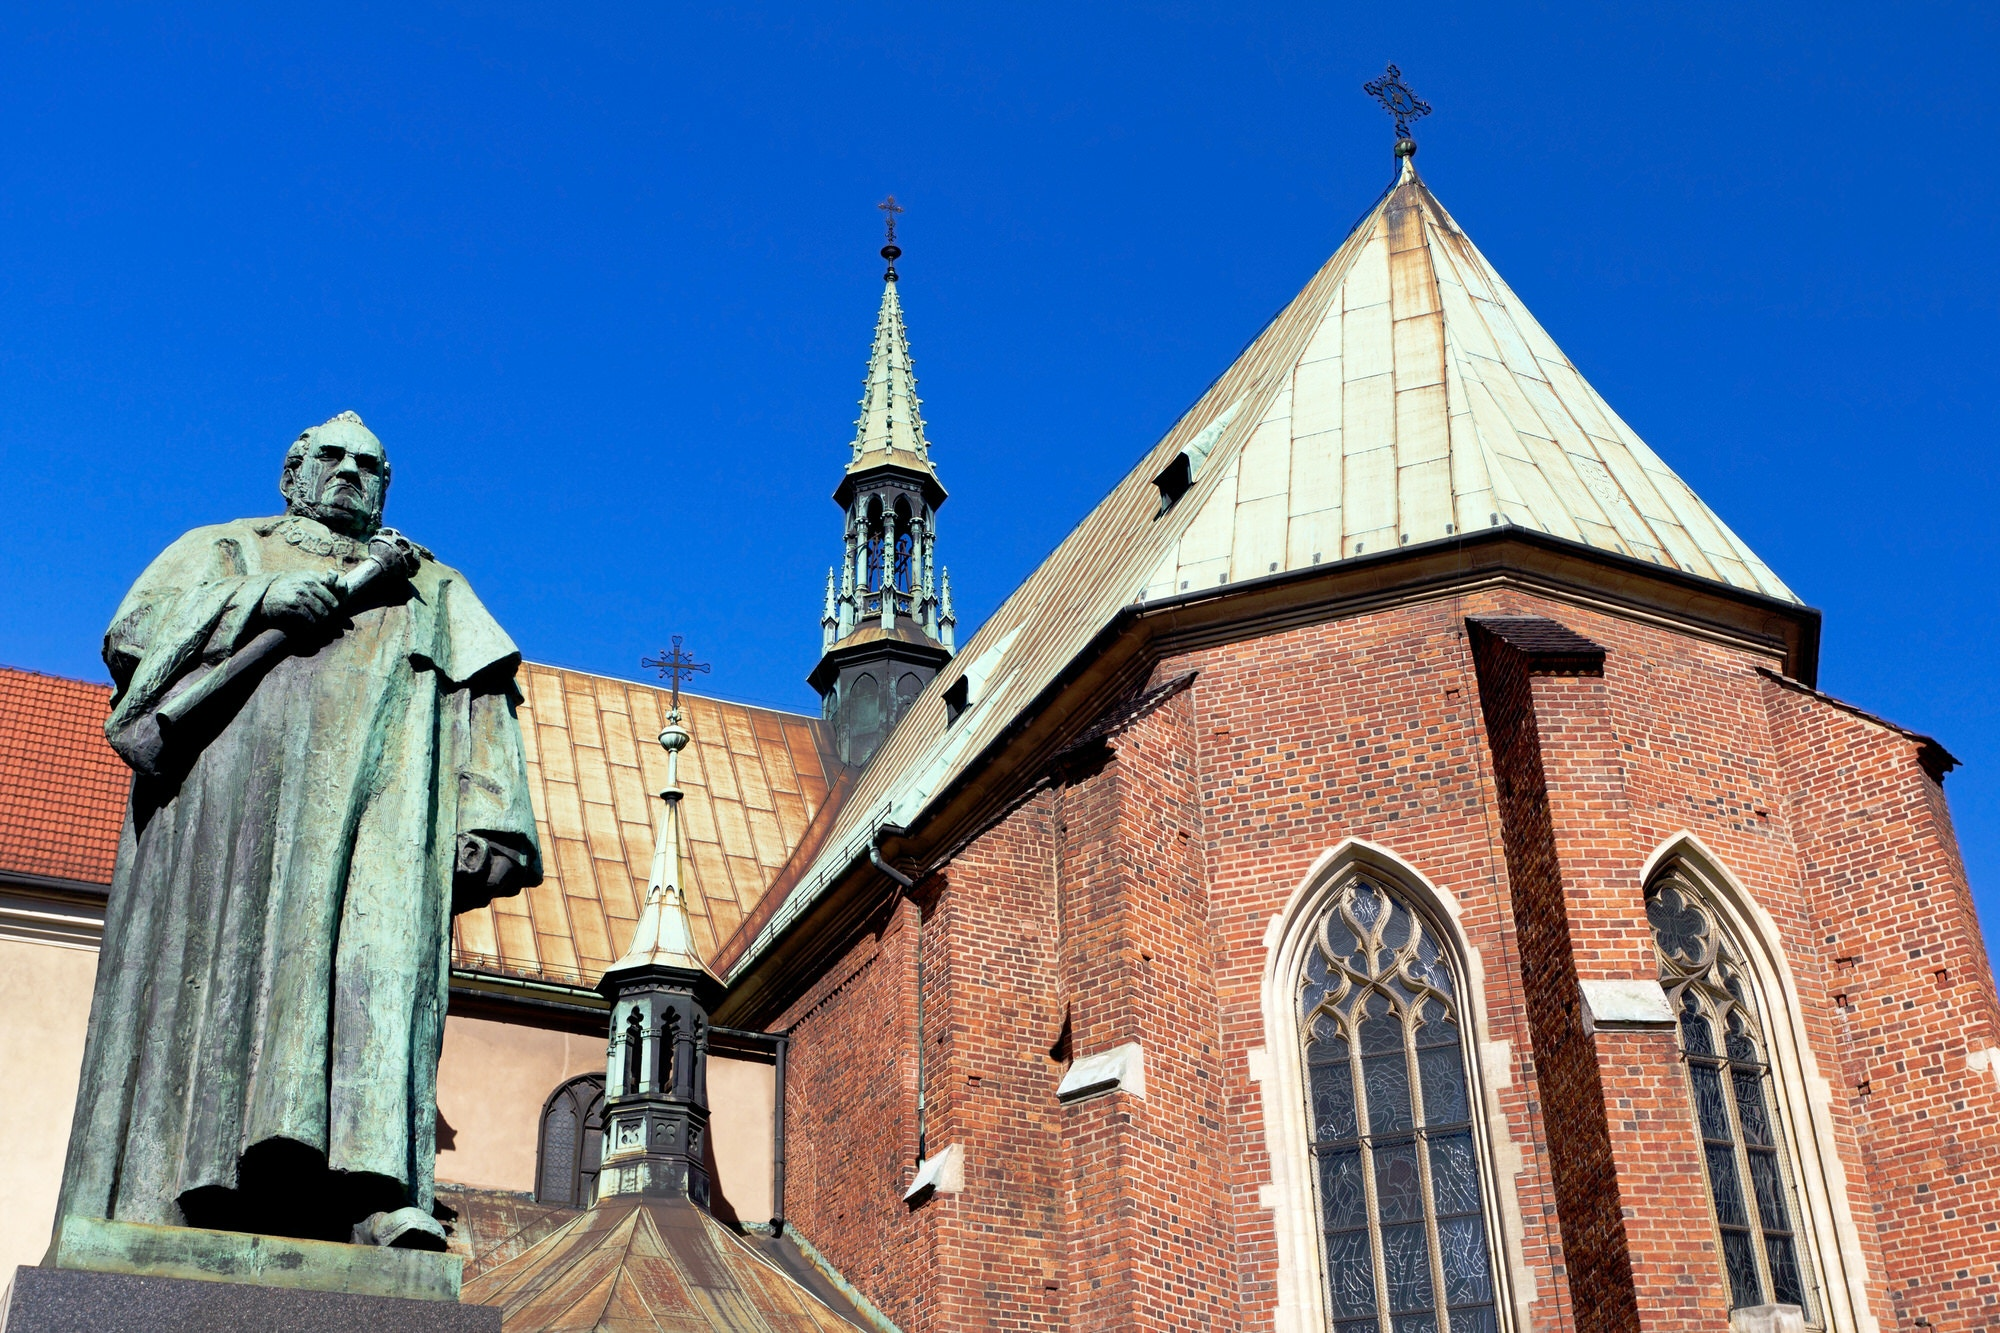 Monument of Dr. Jozef Dietl in Front of St. Francis of Assisi Church, Kraków, Poland